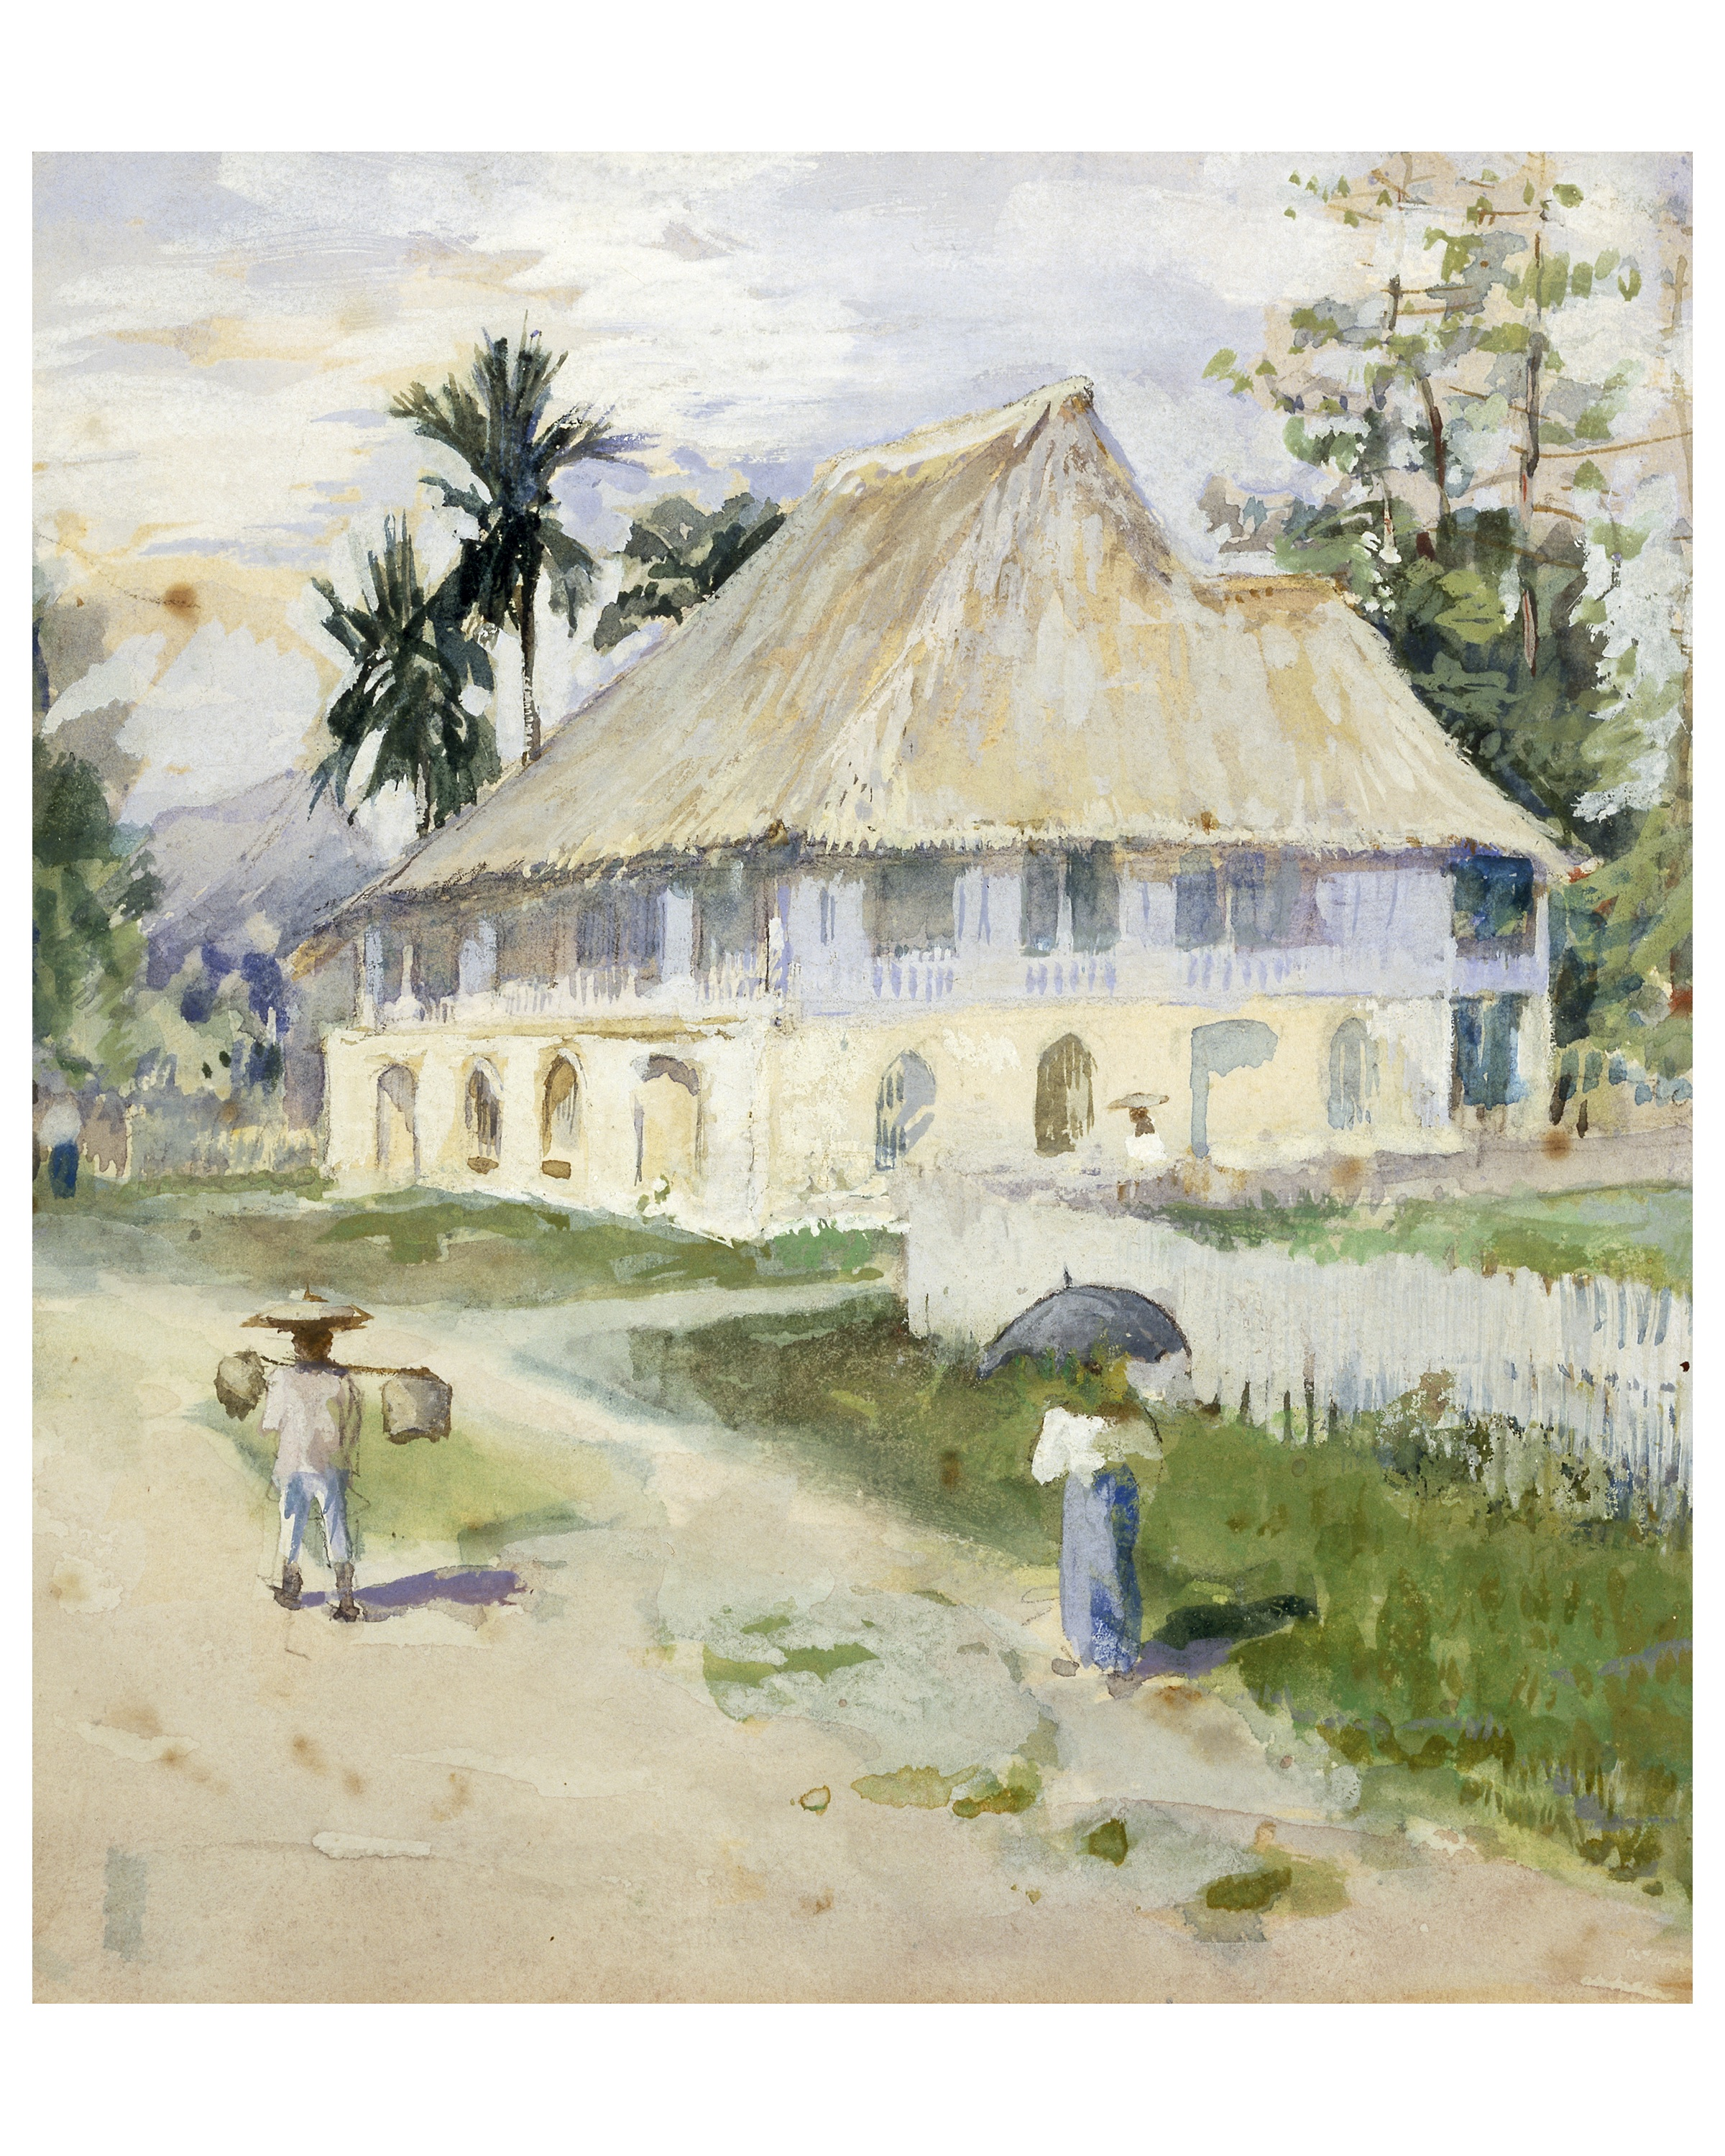 Governor's House, Panay, Philippines  1901-1902